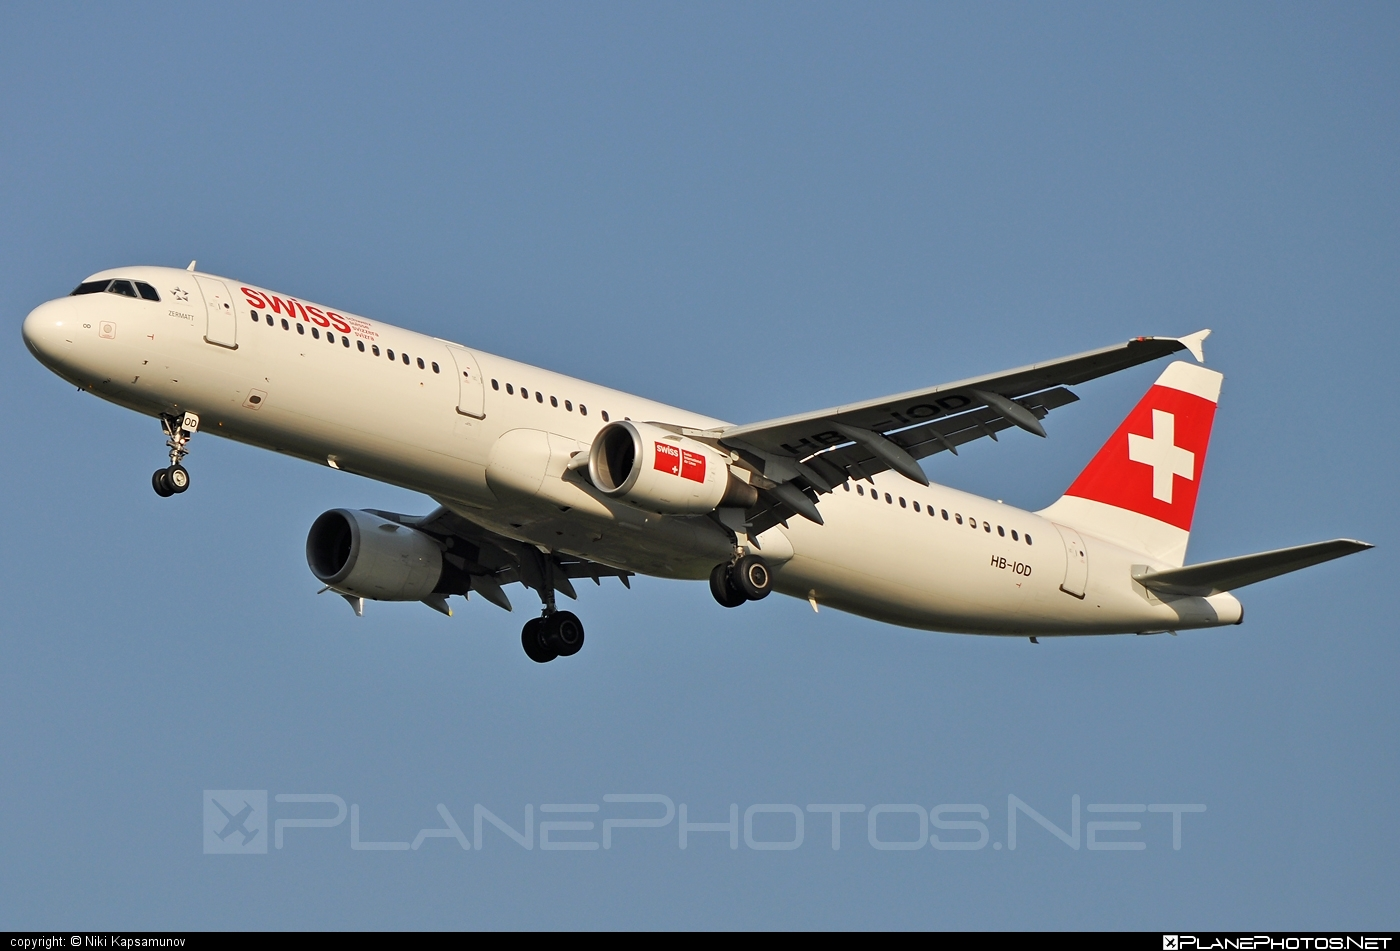 Airbus A321-111 - HB-IOD operated by Swiss International Air Lines #a320family #a321 #airbus #airbus321 #swiss #swissairlines